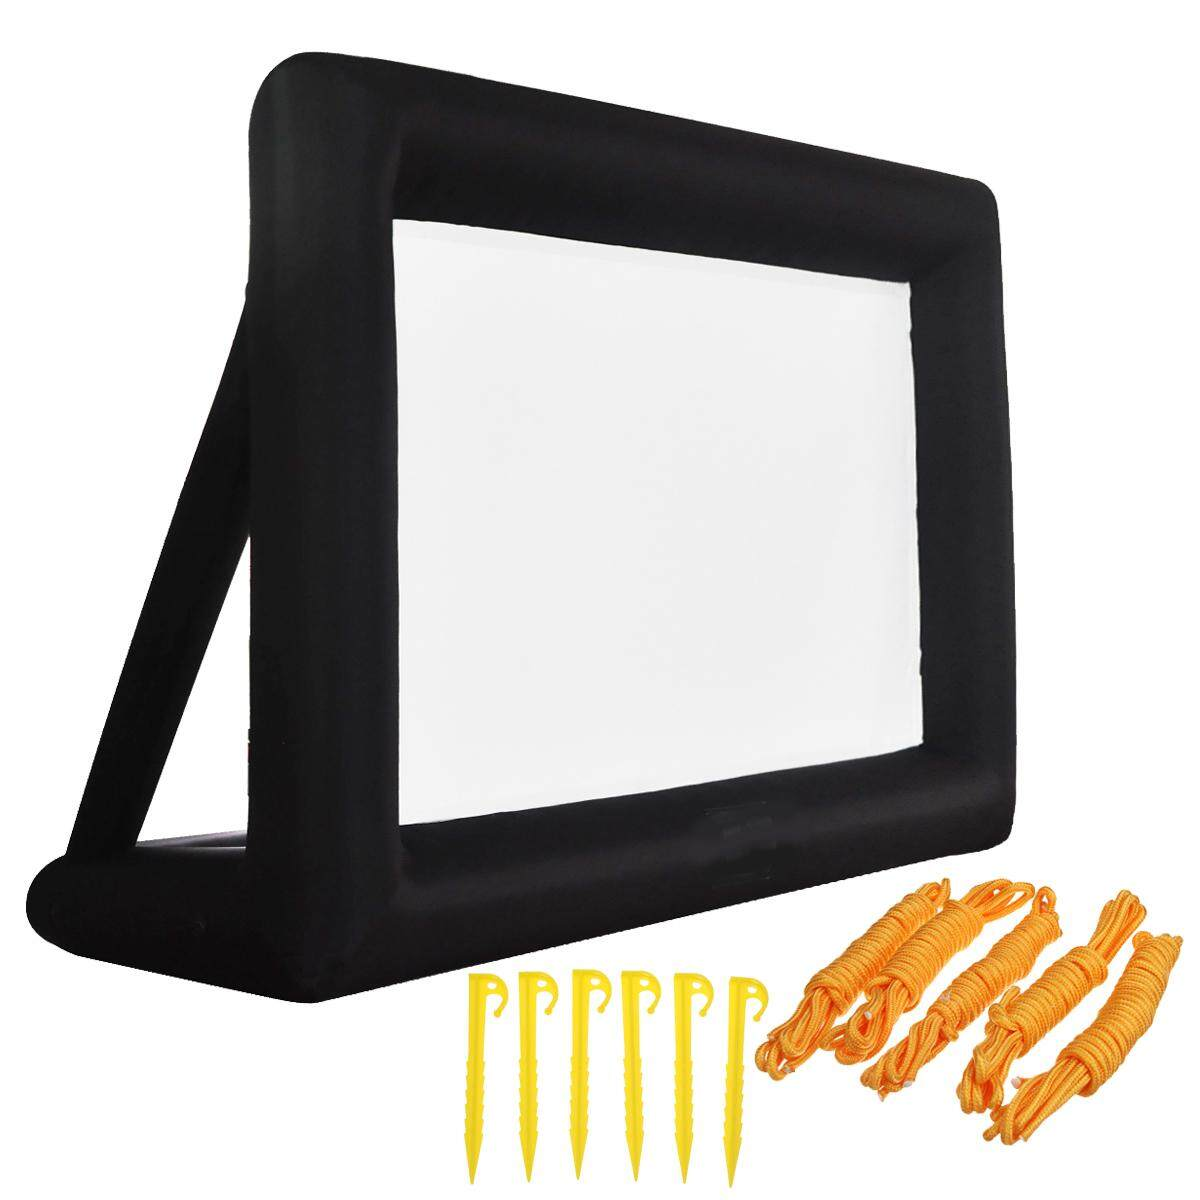 Projector Screen Outdoor Inflatable price in Singapore